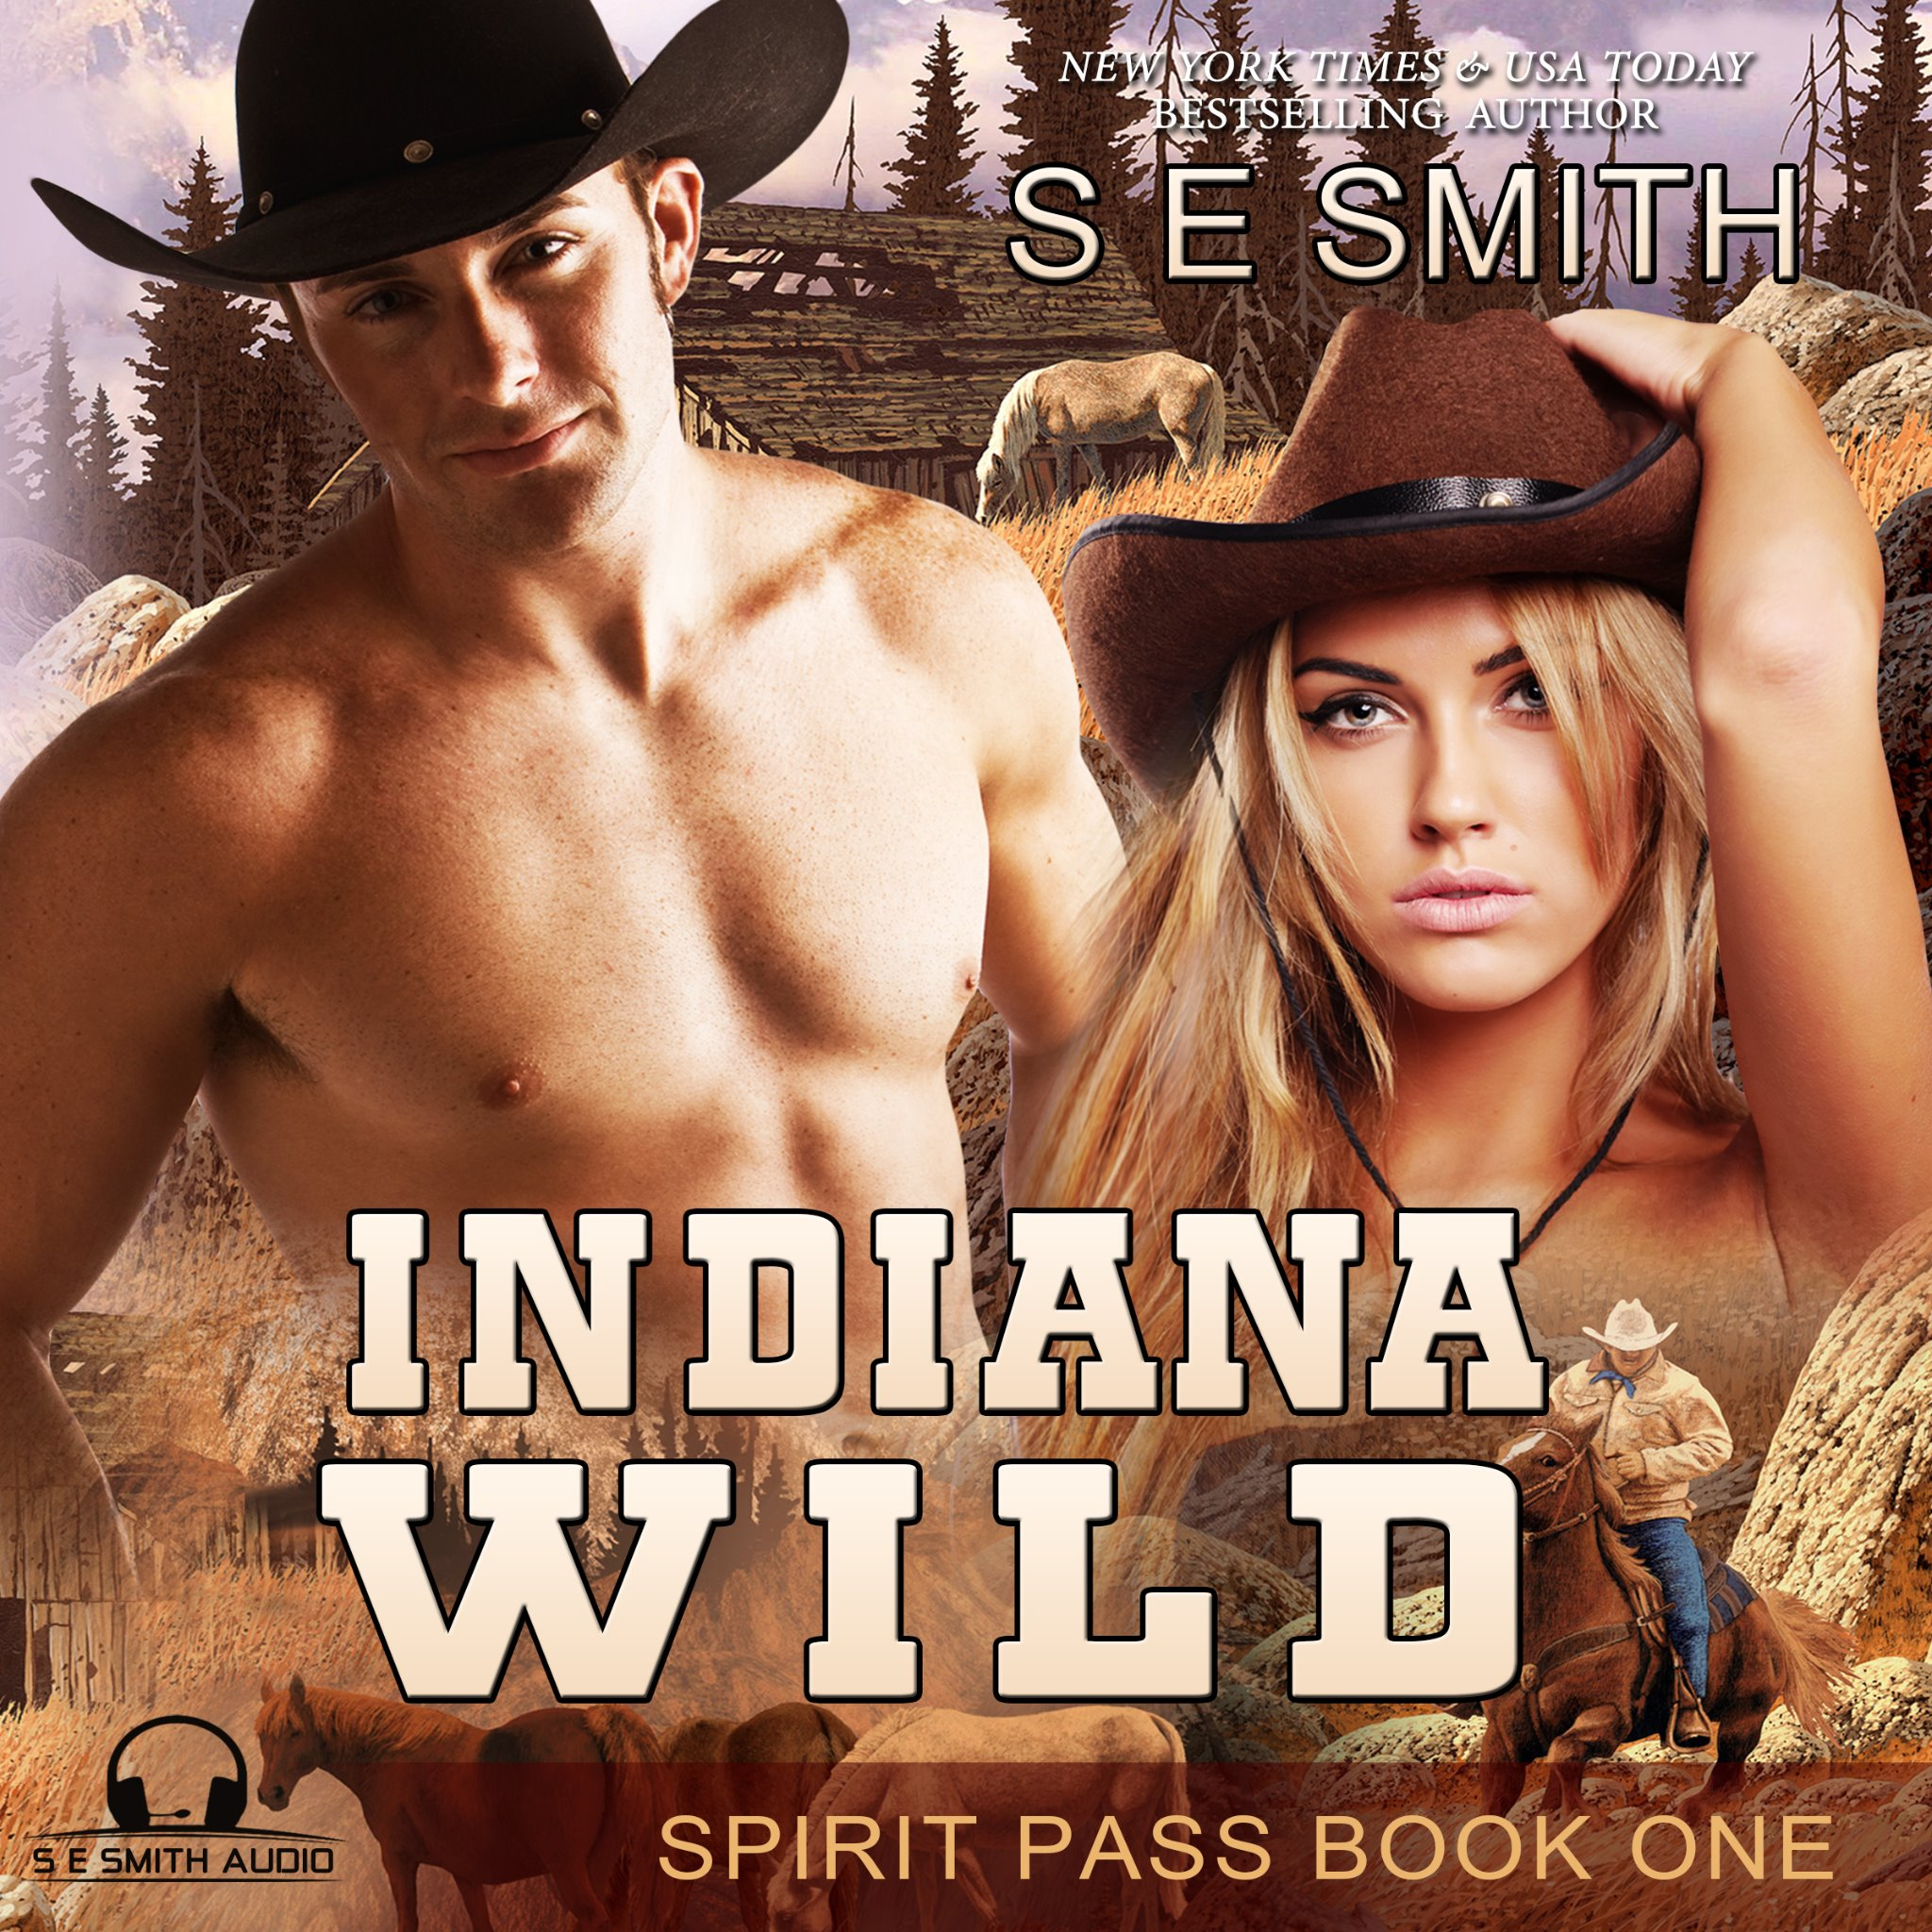 Indiana Wild: Spirit Pass Book 1 (Audiobook CD)